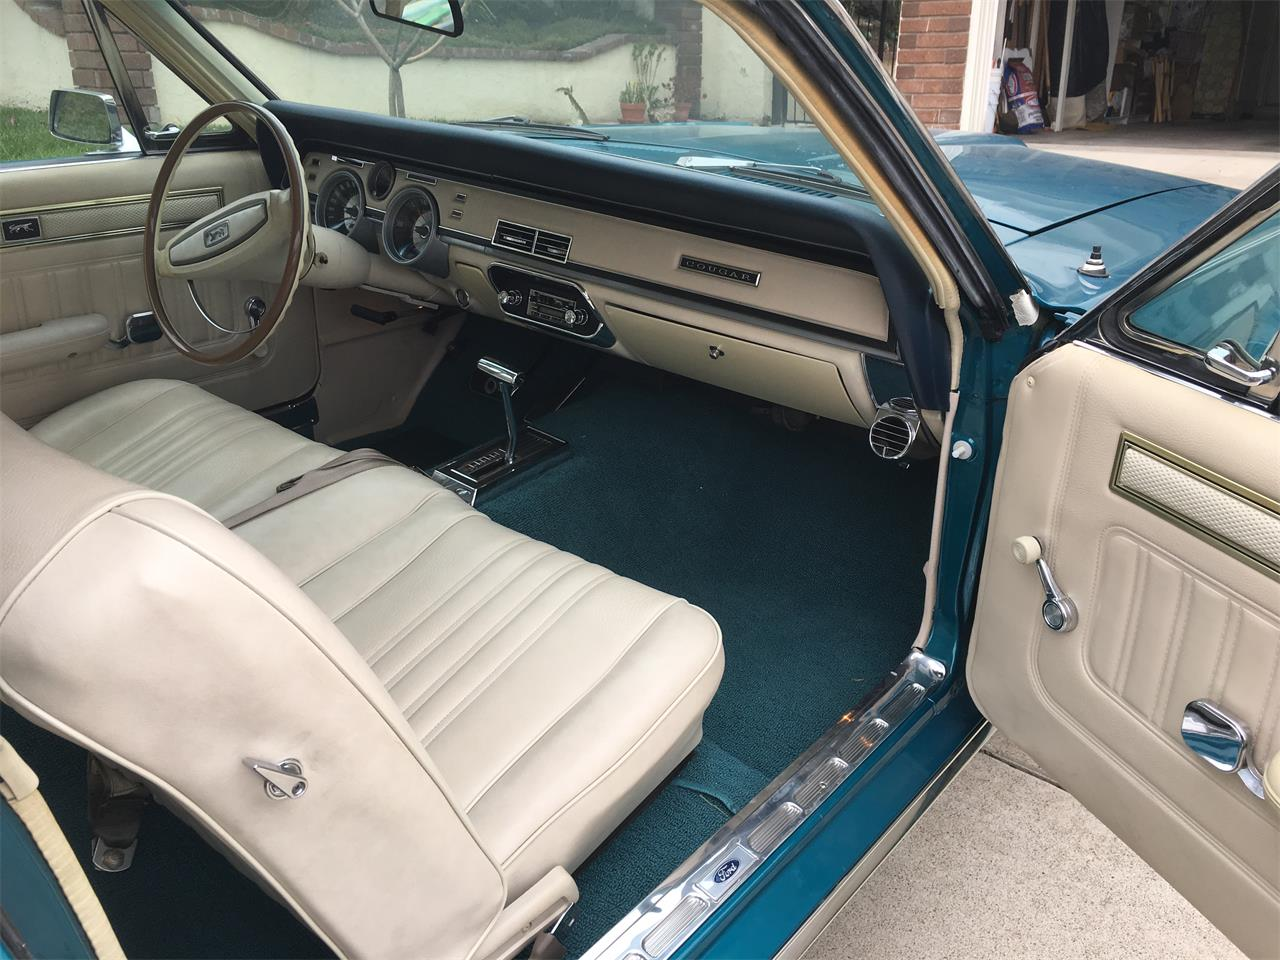 Large Picture of '68 Mercury Cougar  located in Mission Viejo California - $20,000.00 Offered by a Private Seller - L6MB